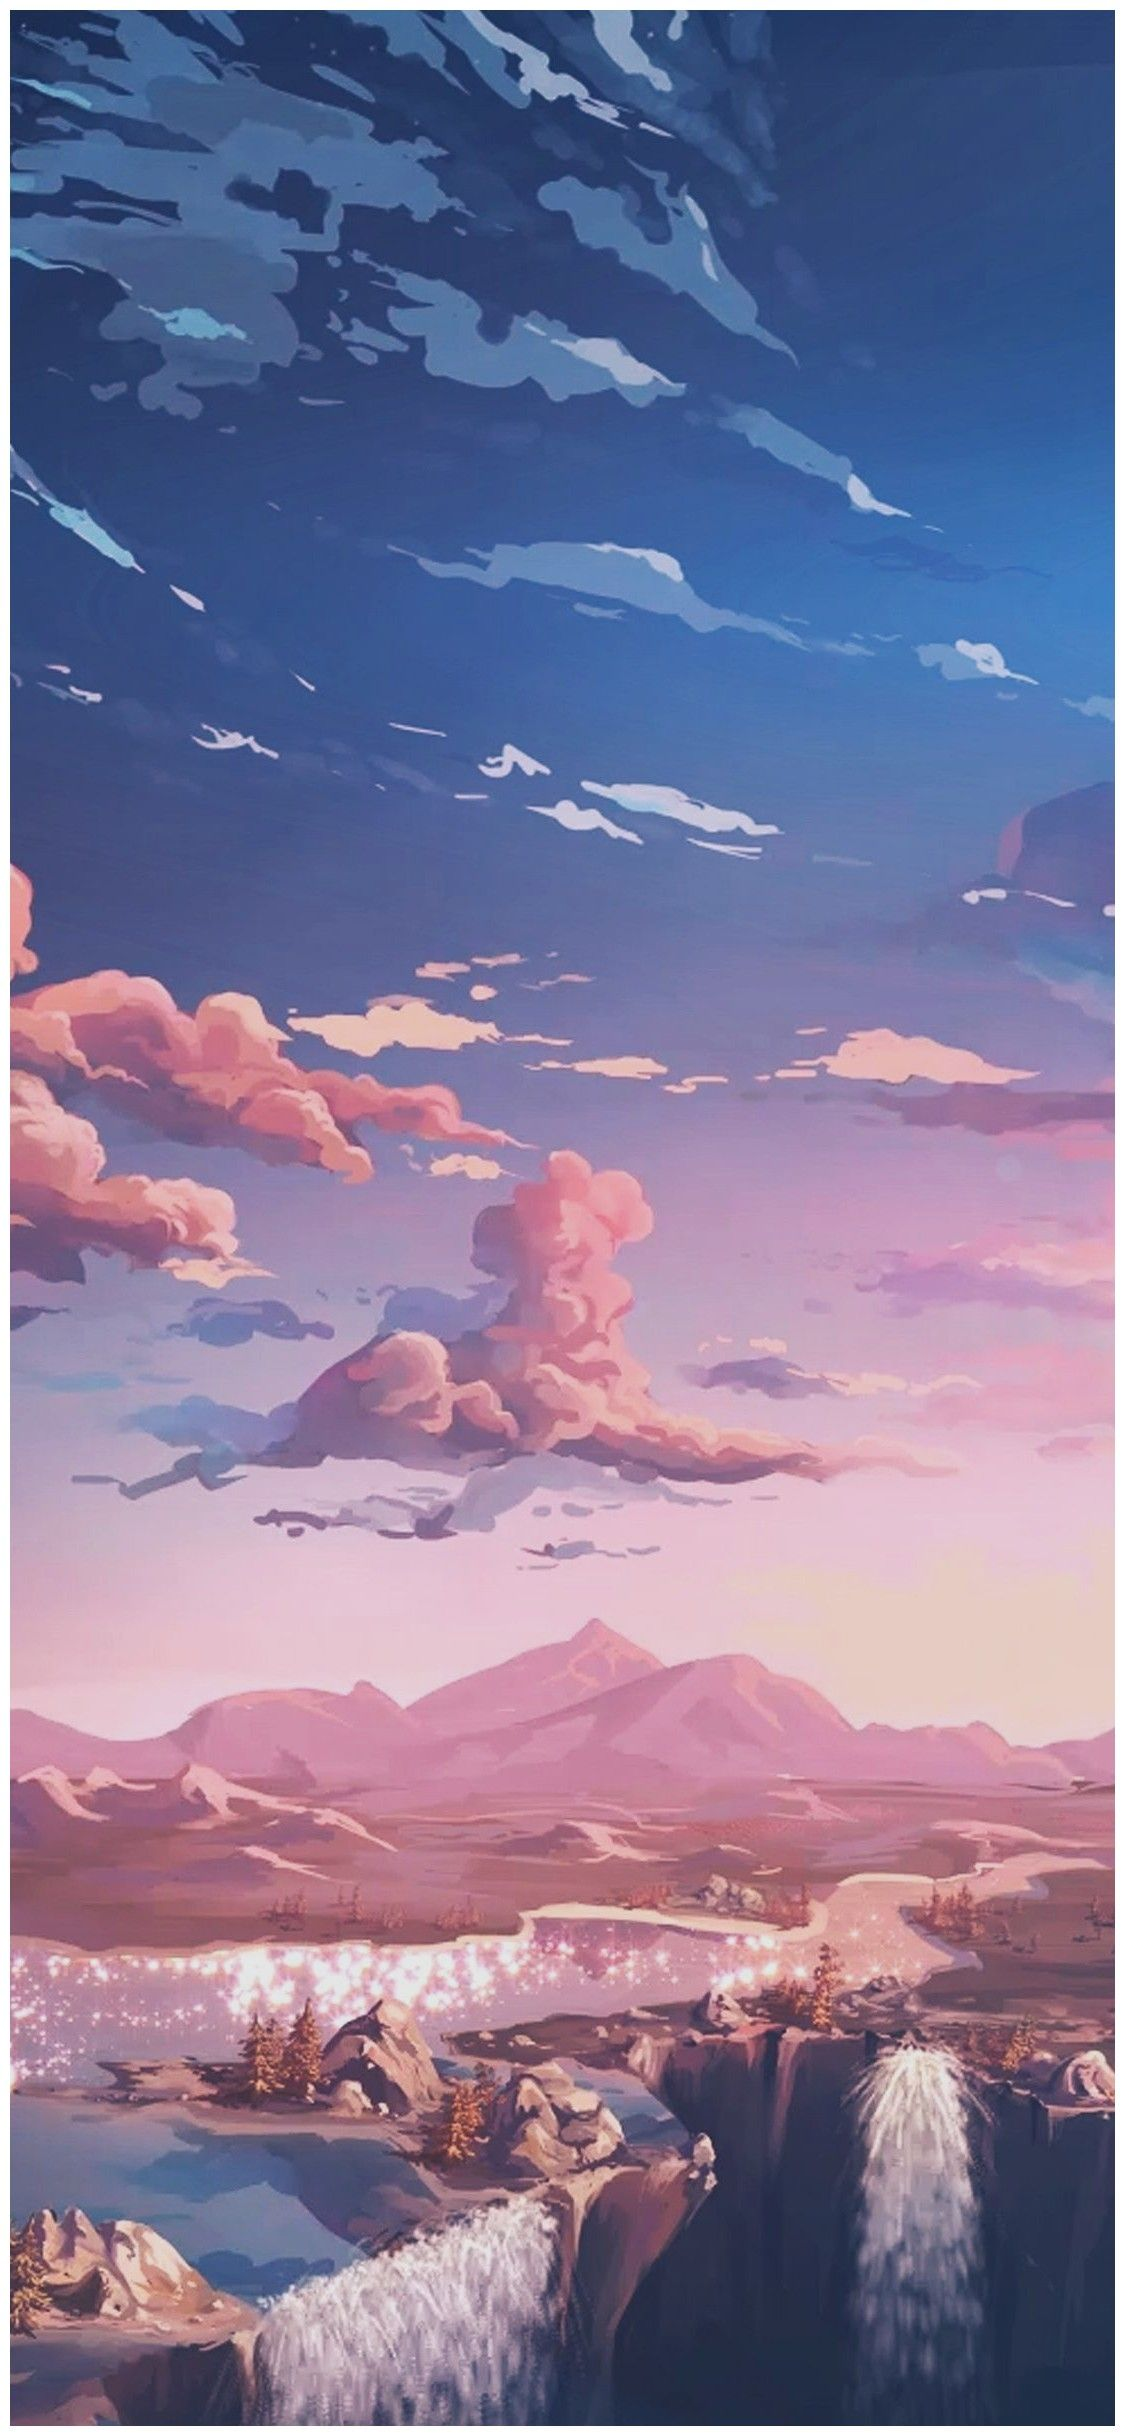 Anime Aesthetic Tumblr Wallpapers Top Free Anime Aesthetic Tumblr Backgrounds Wallpaperaccess